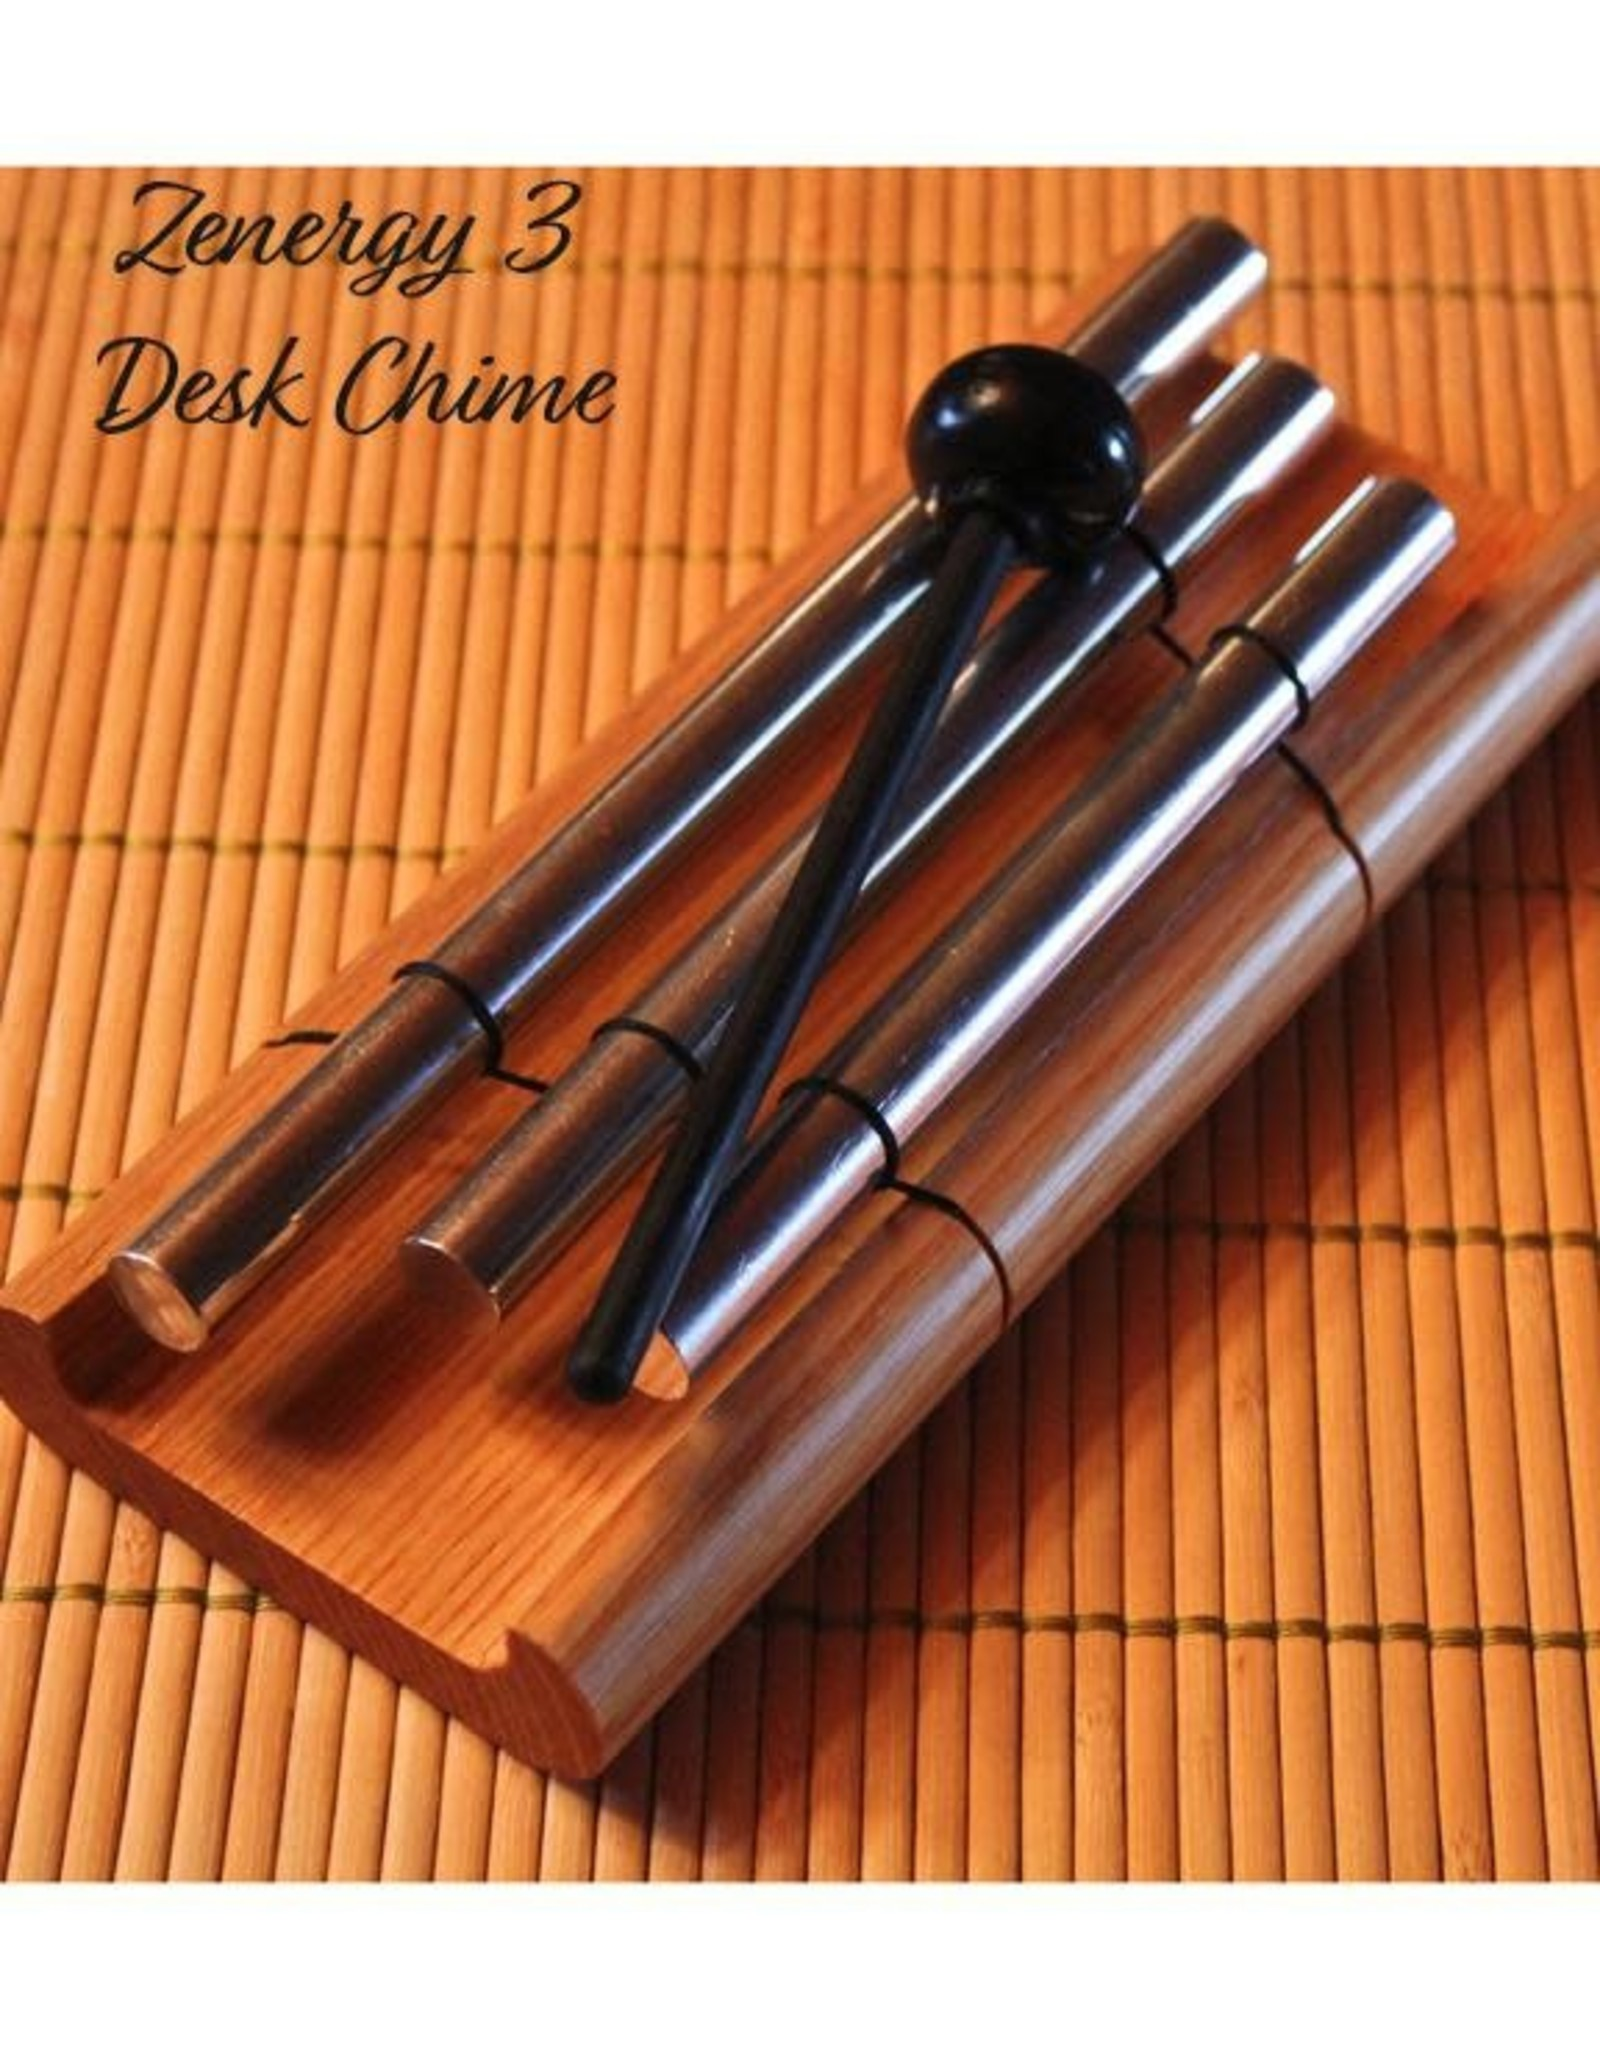 Woodstock Percussion Zenenergy Trio Chime